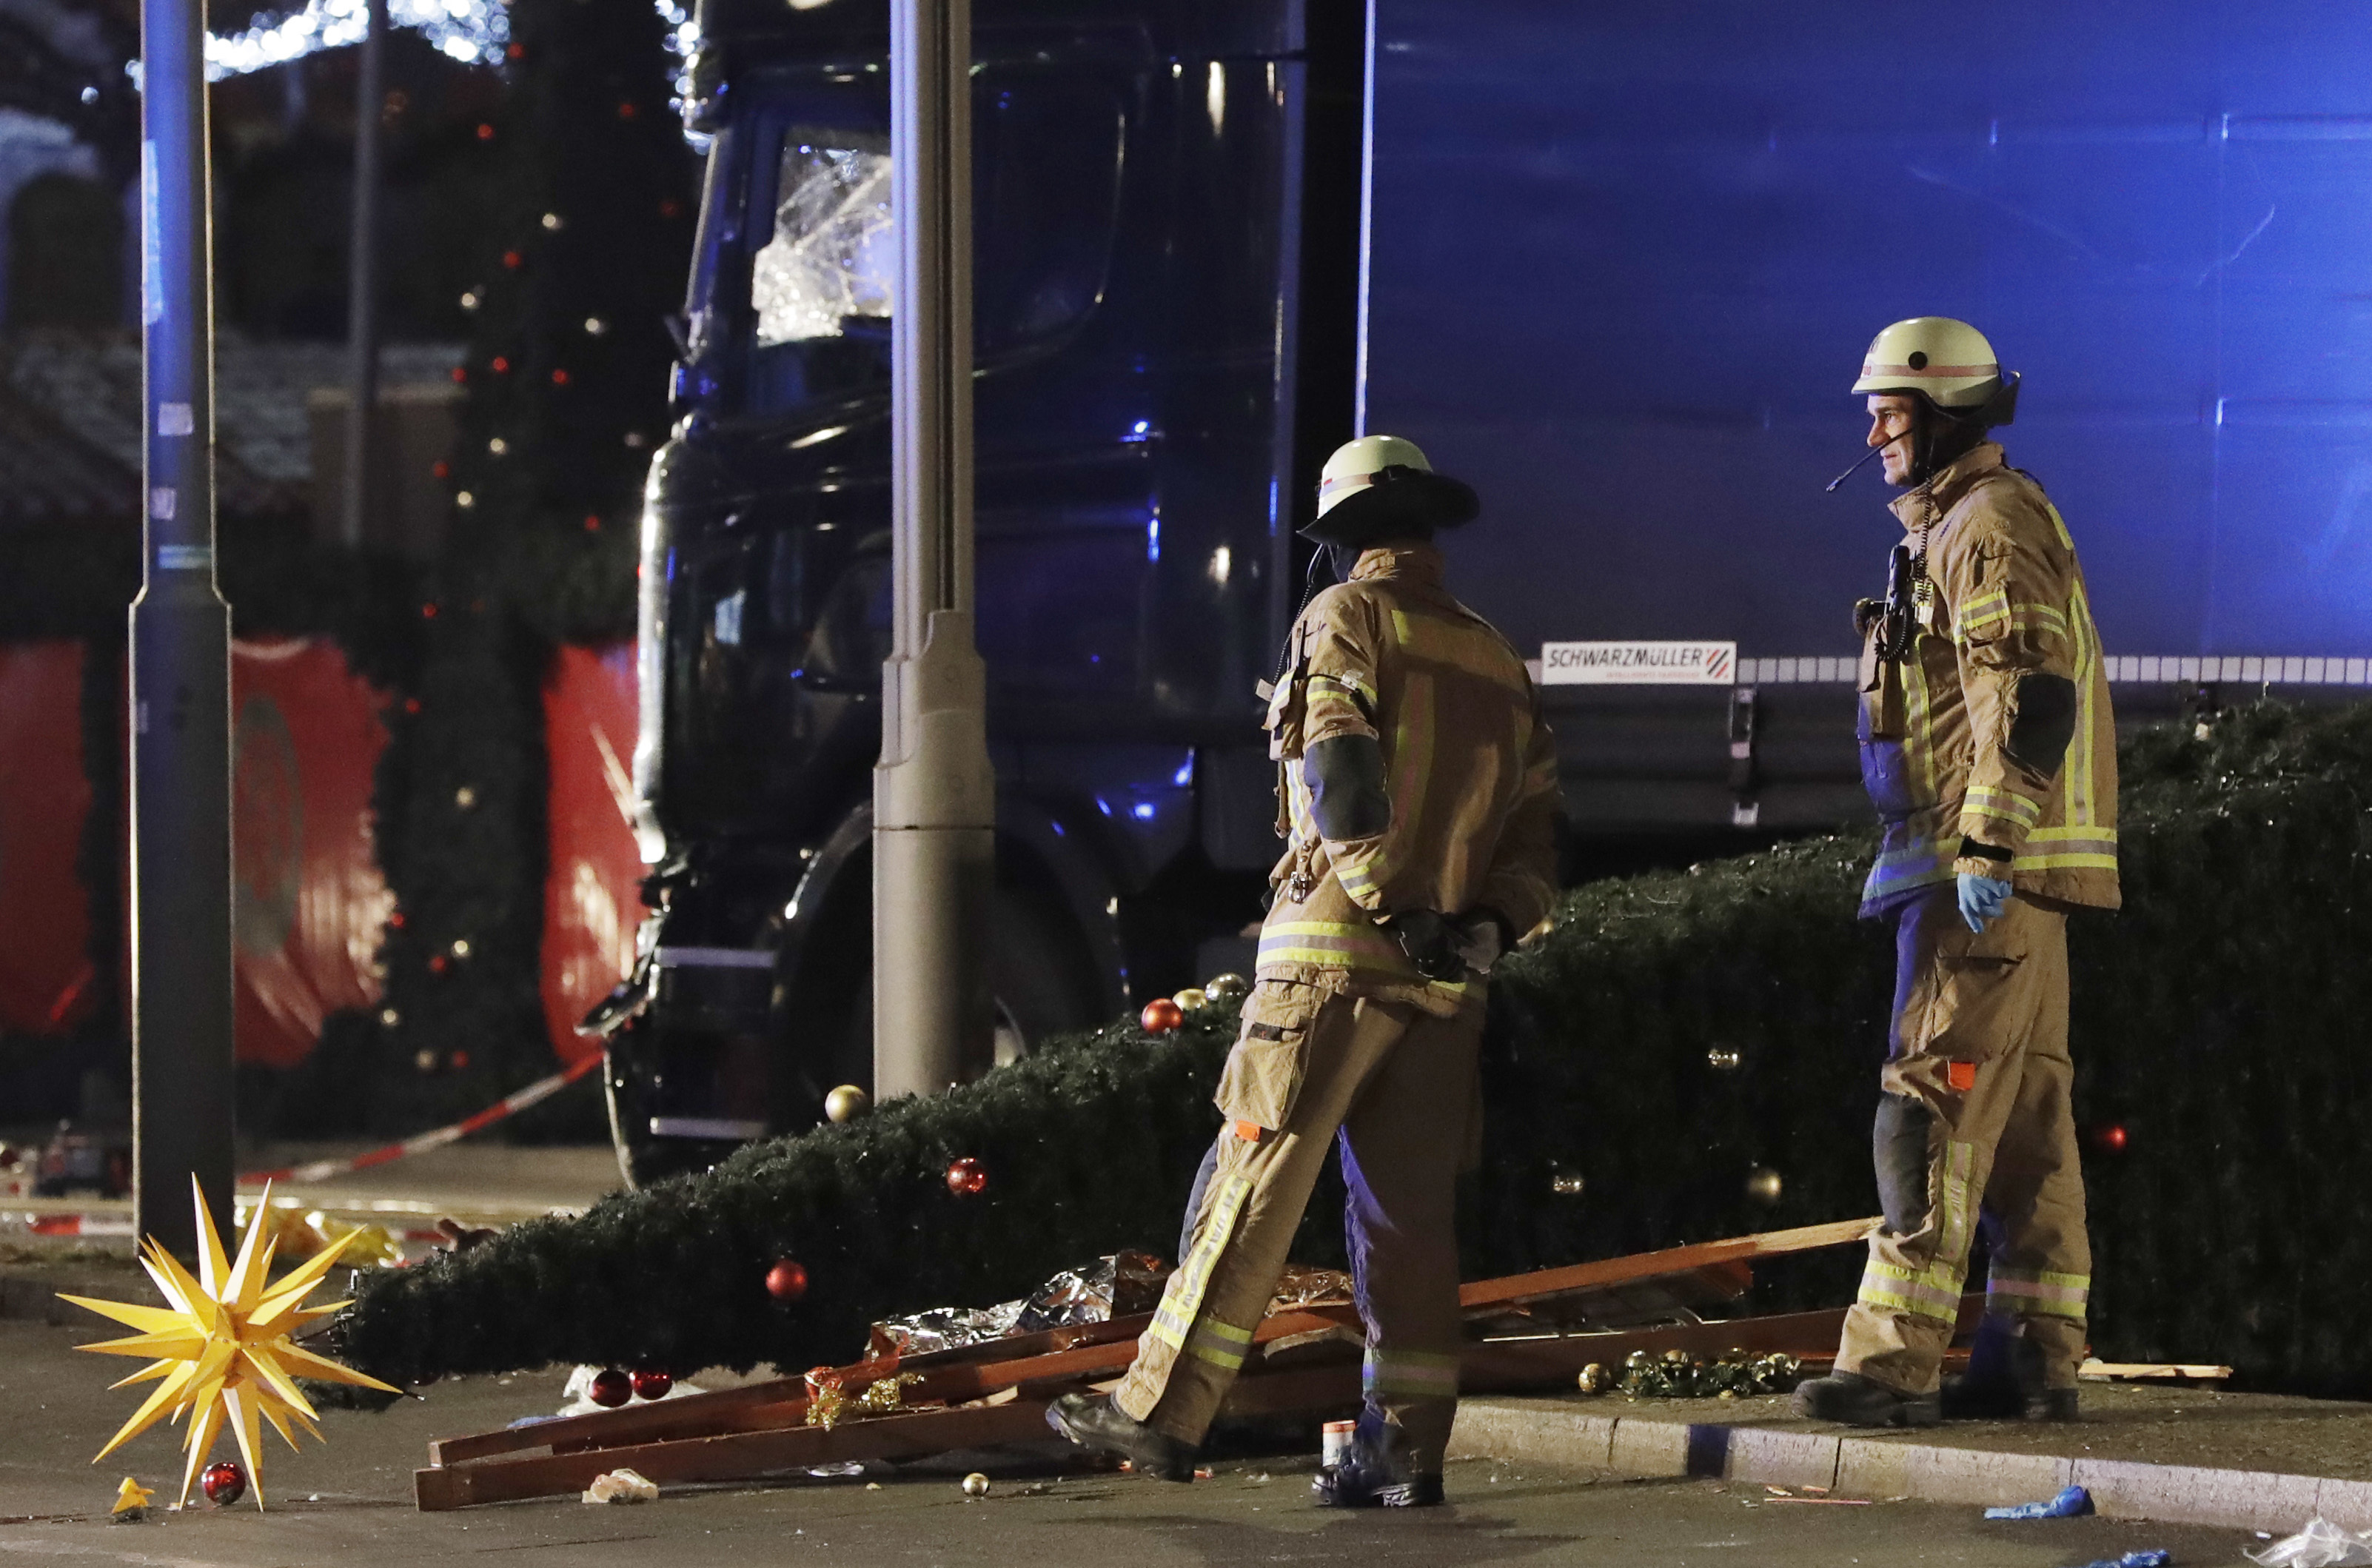 Germany Had Monitored Berlin Truck Attack Suspect for Months